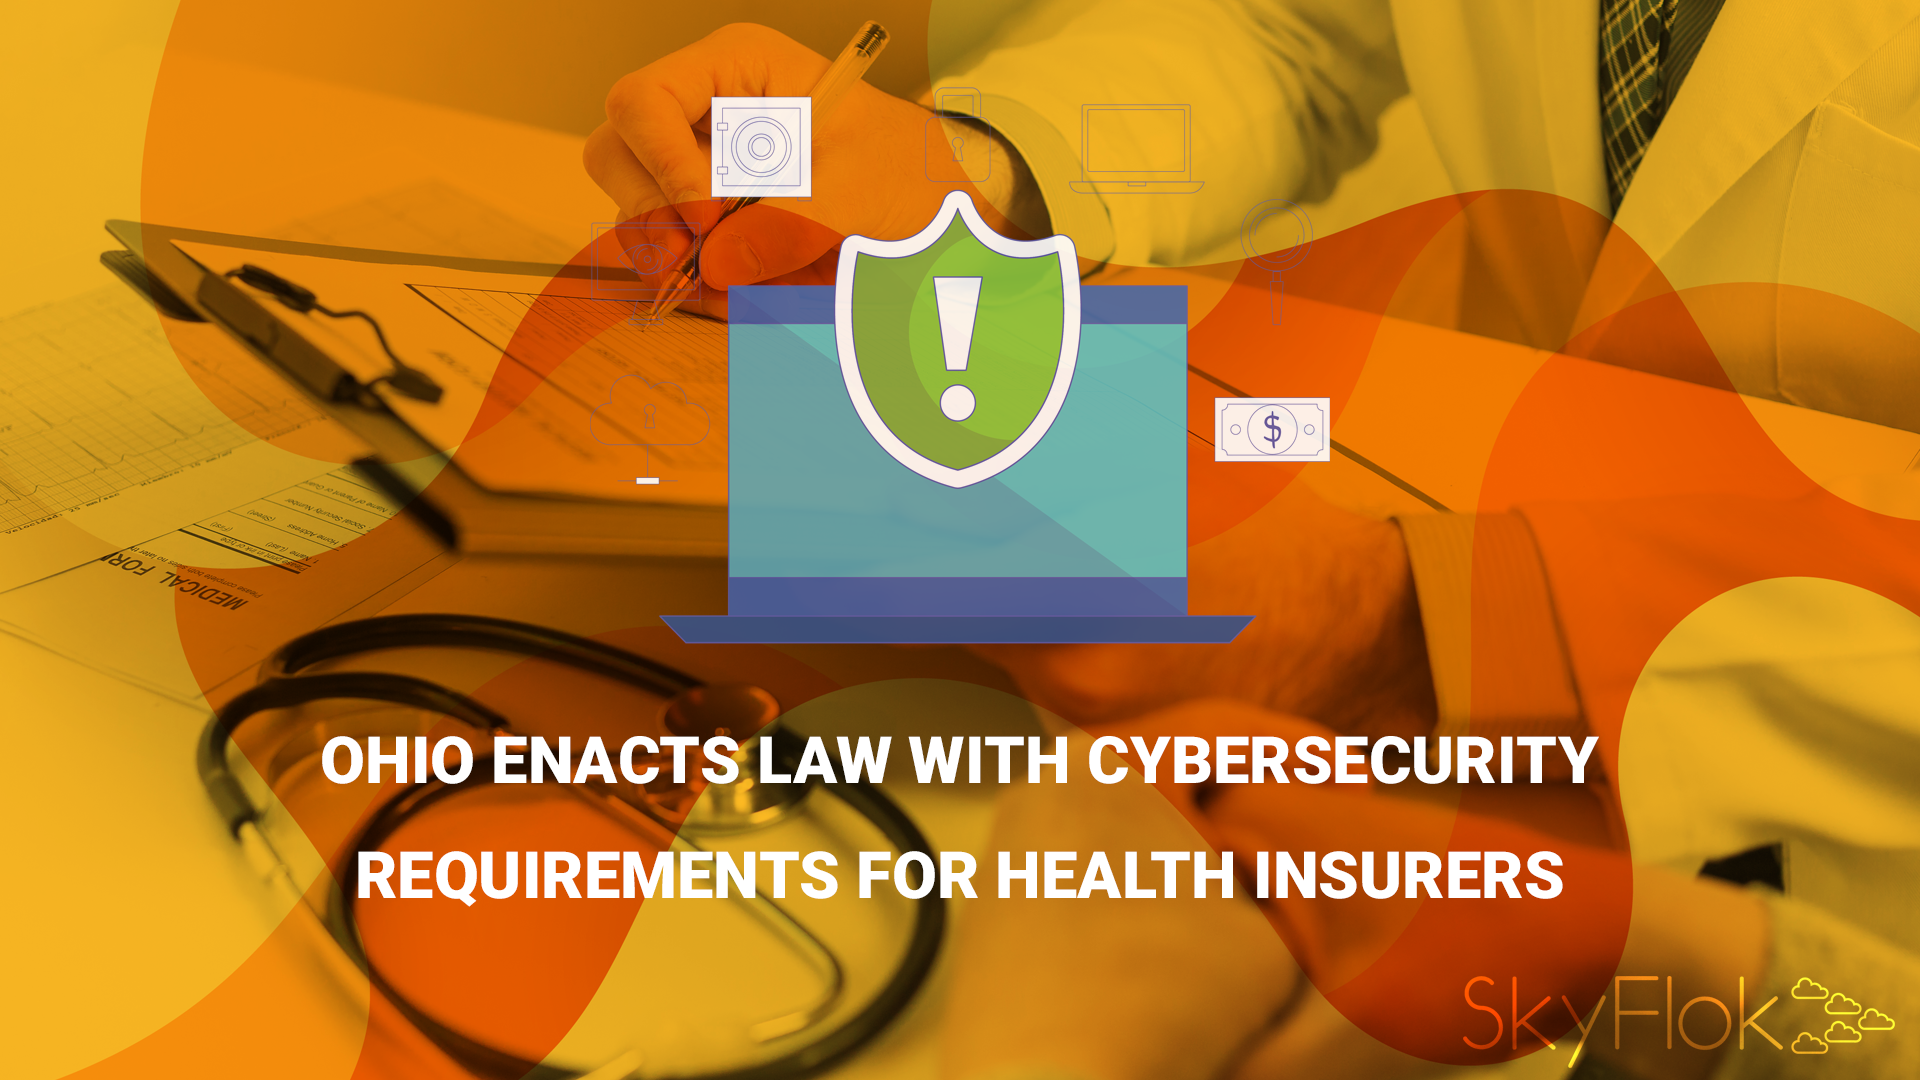 Ohio Enacts Law with Cybersecurity Requirements for Health Insurers